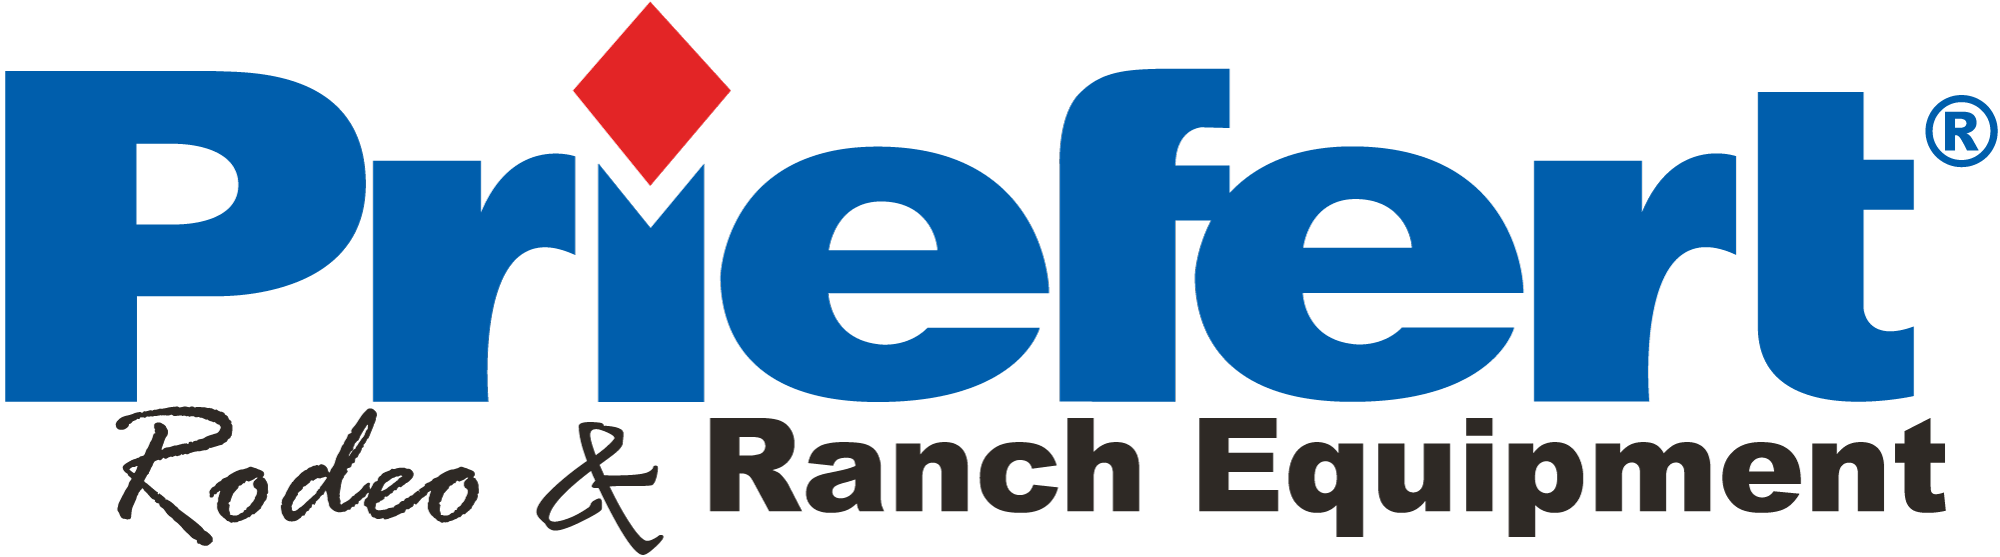 Priefert_Rodeo&Ranch_2018.png